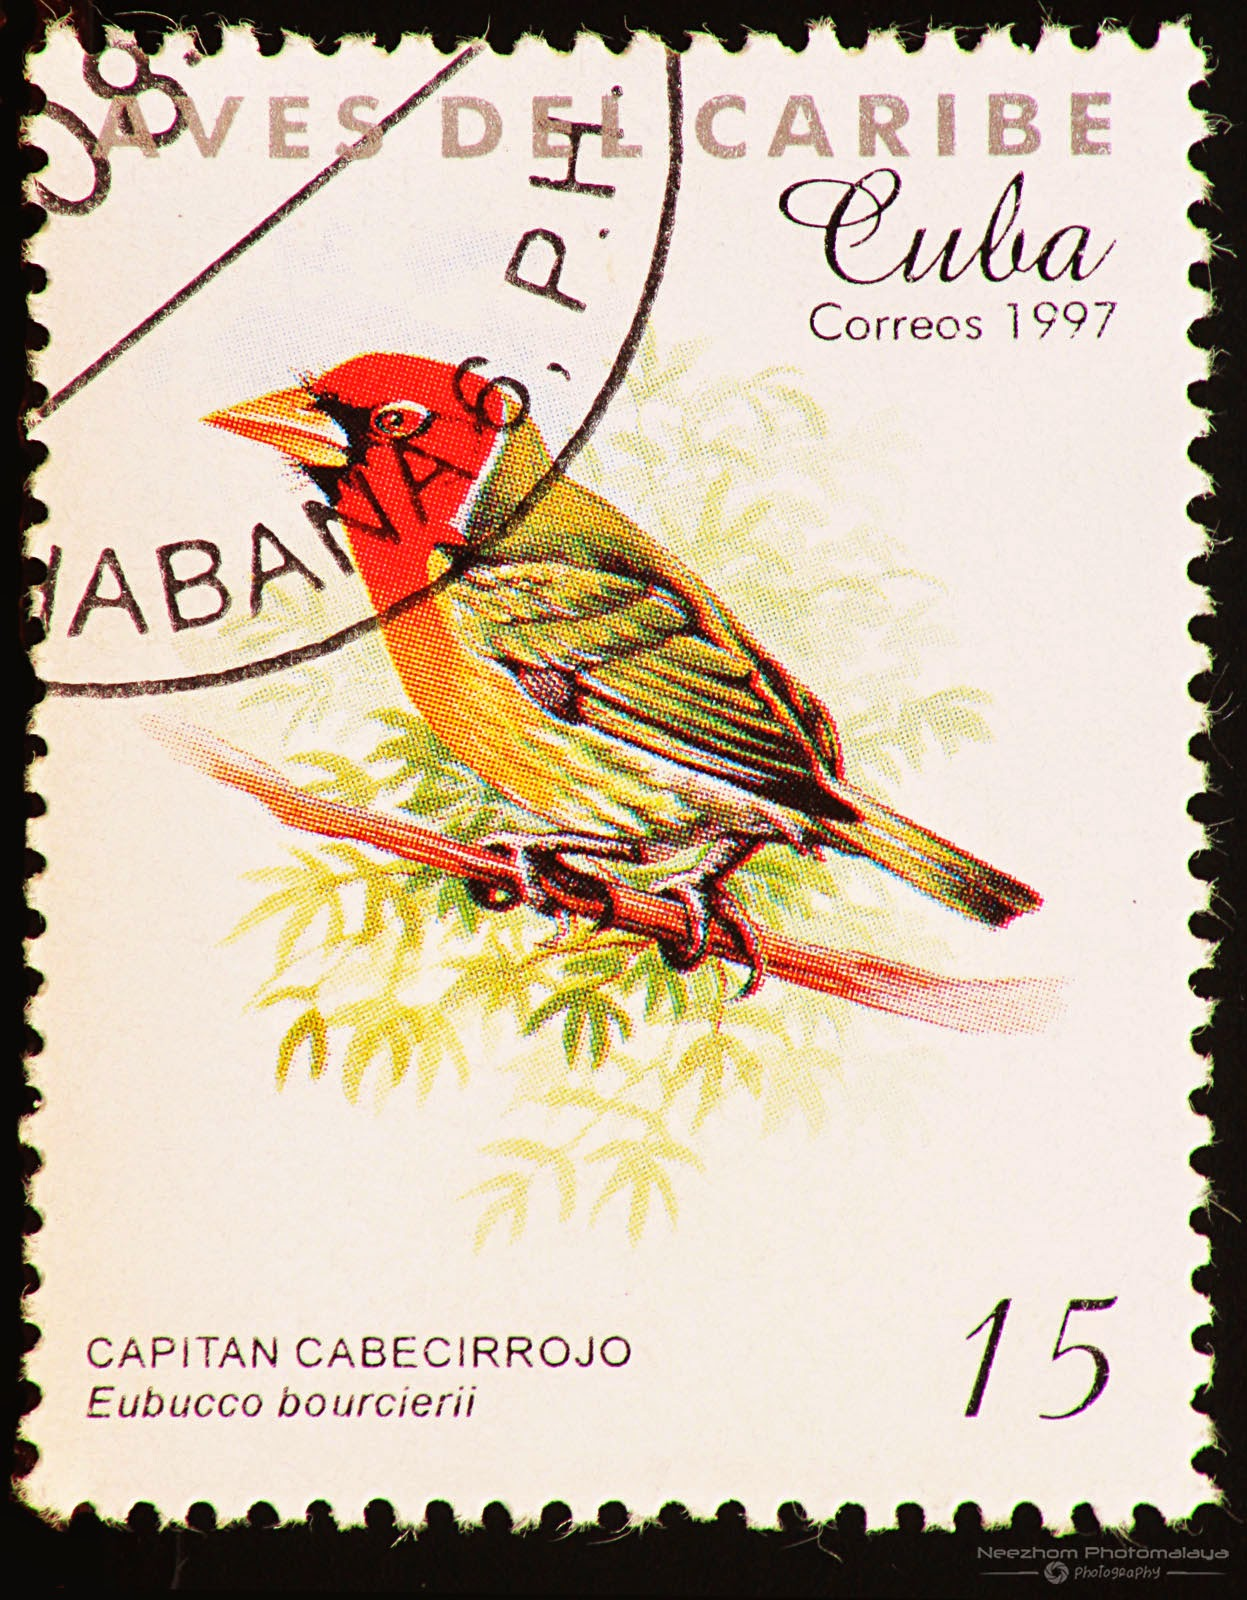 Cuba 1997 Birds of the Caribbean stamp - Red-headed Barbet (Eubucco bourcierii) 15 c